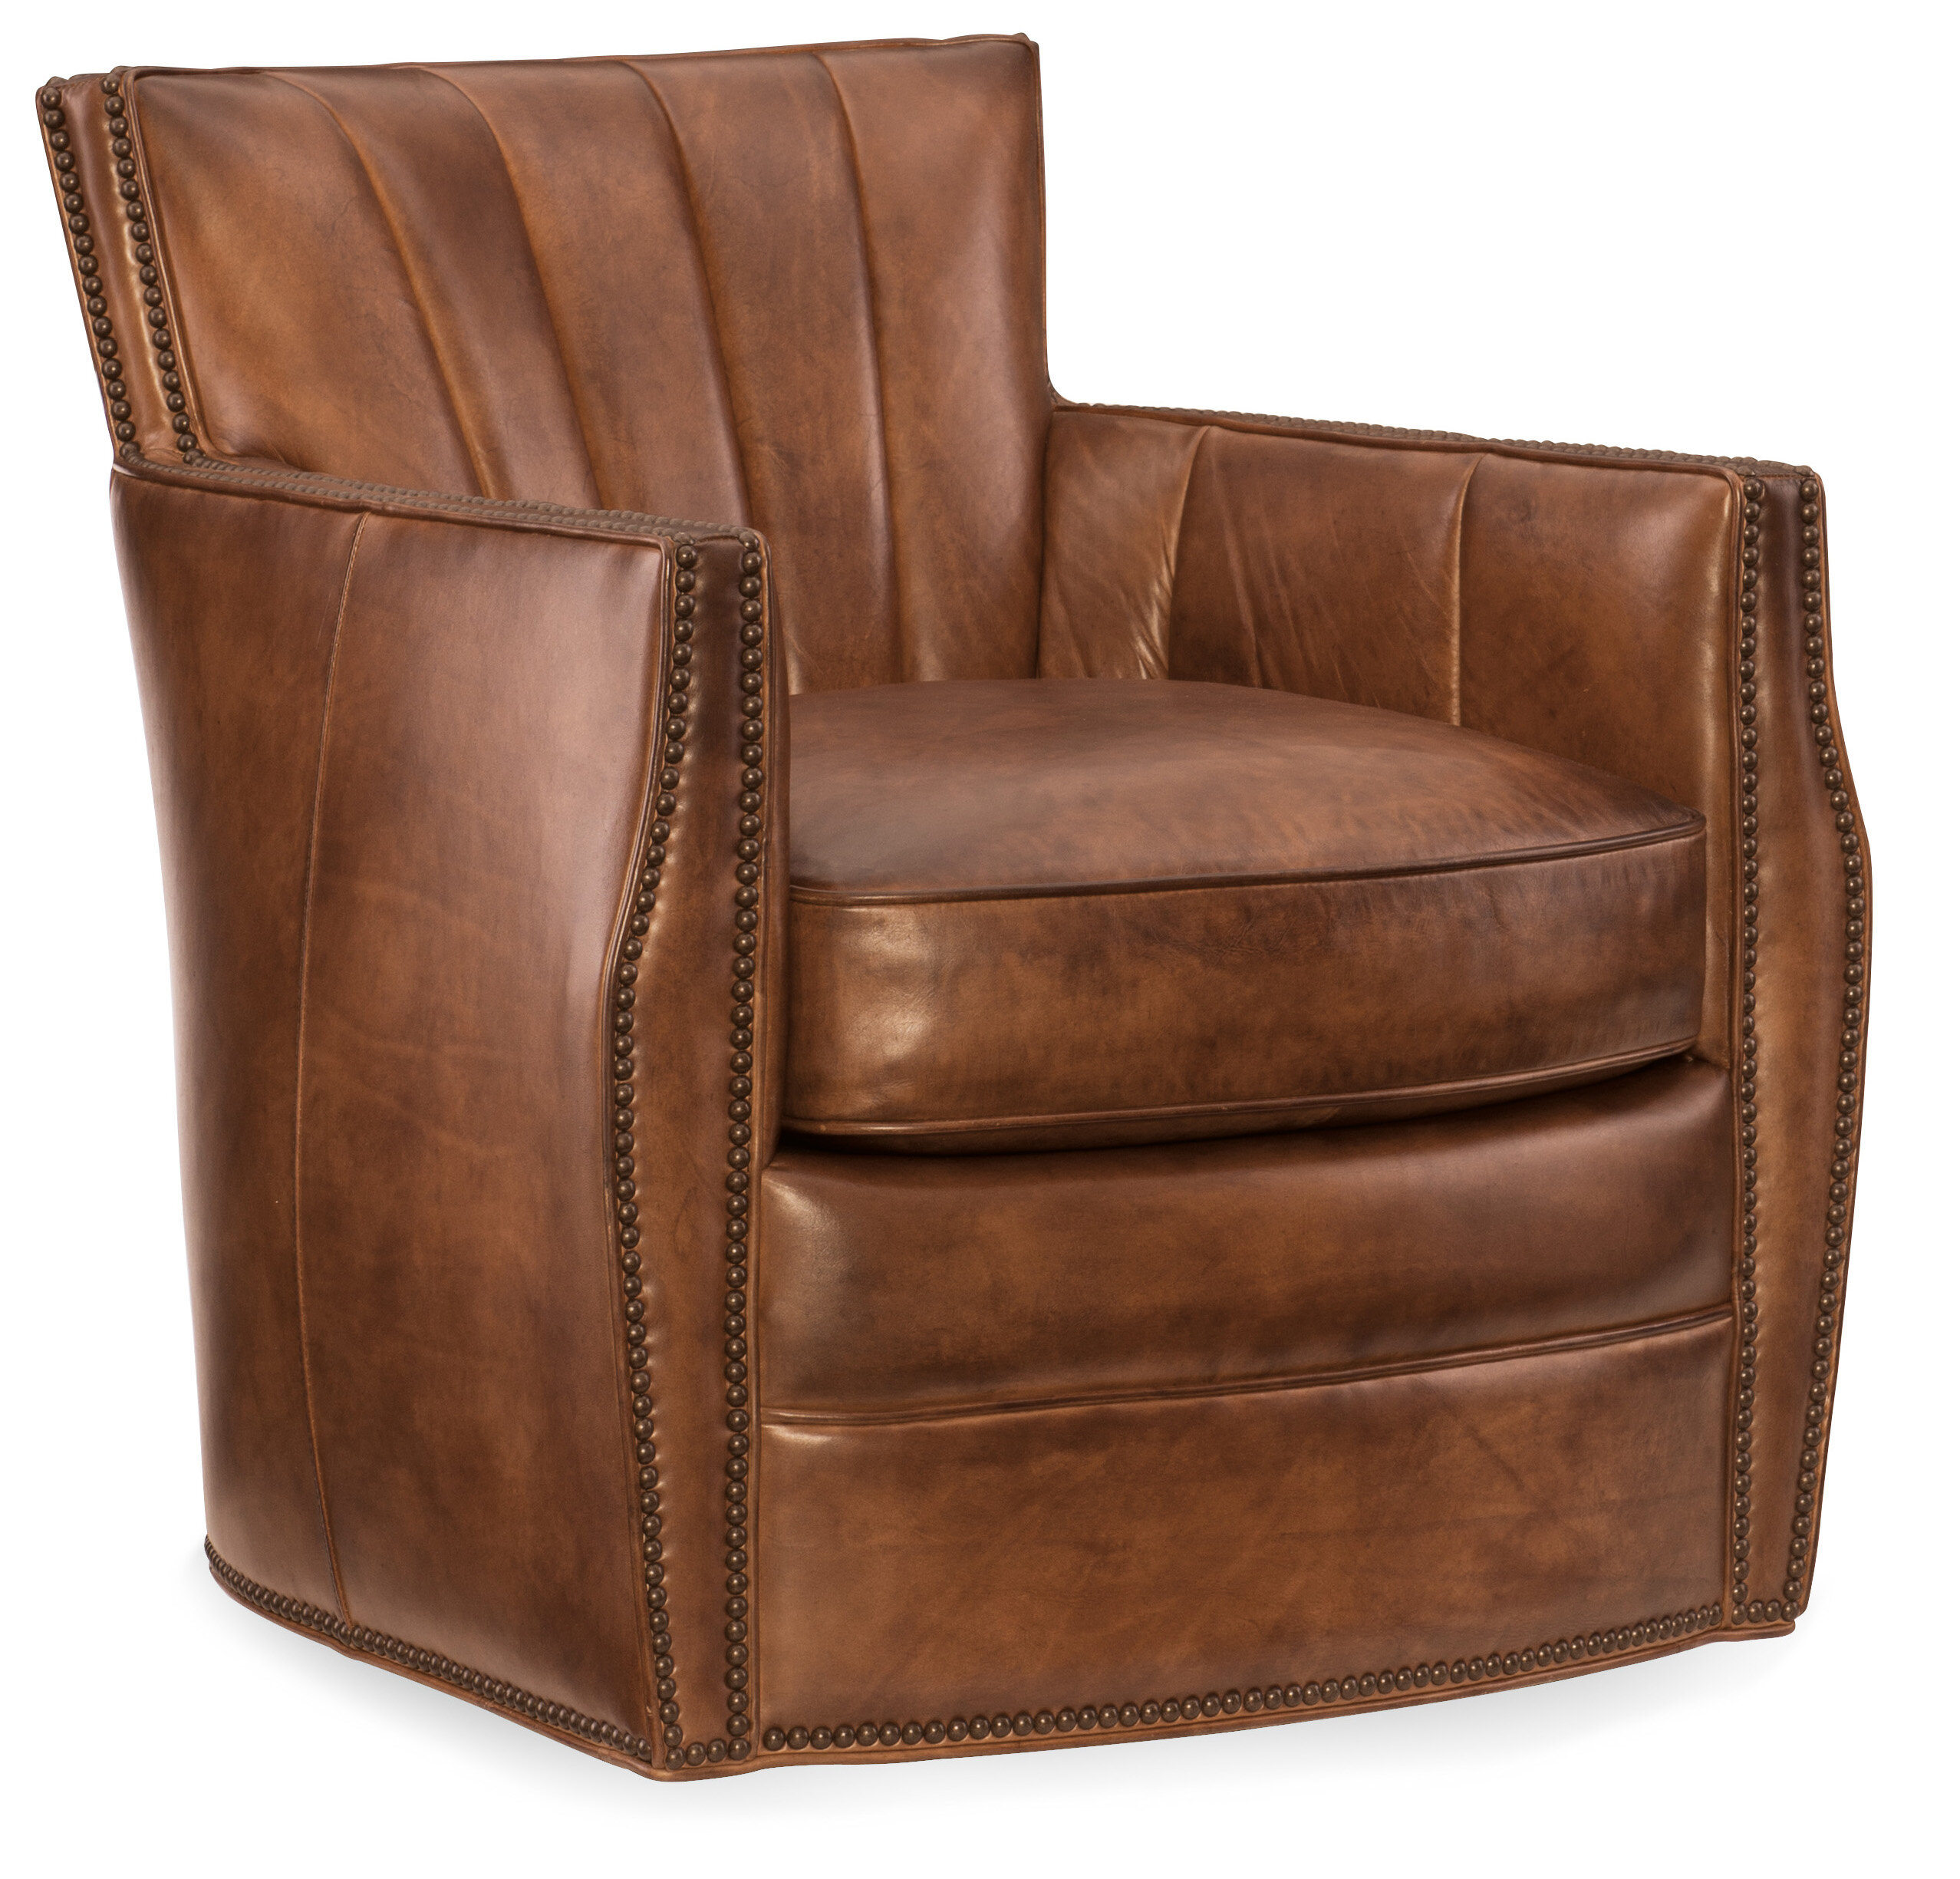 Remarkable Carson Swivel Club Chair Creativecarmelina Interior Chair Design Creativecarmelinacom